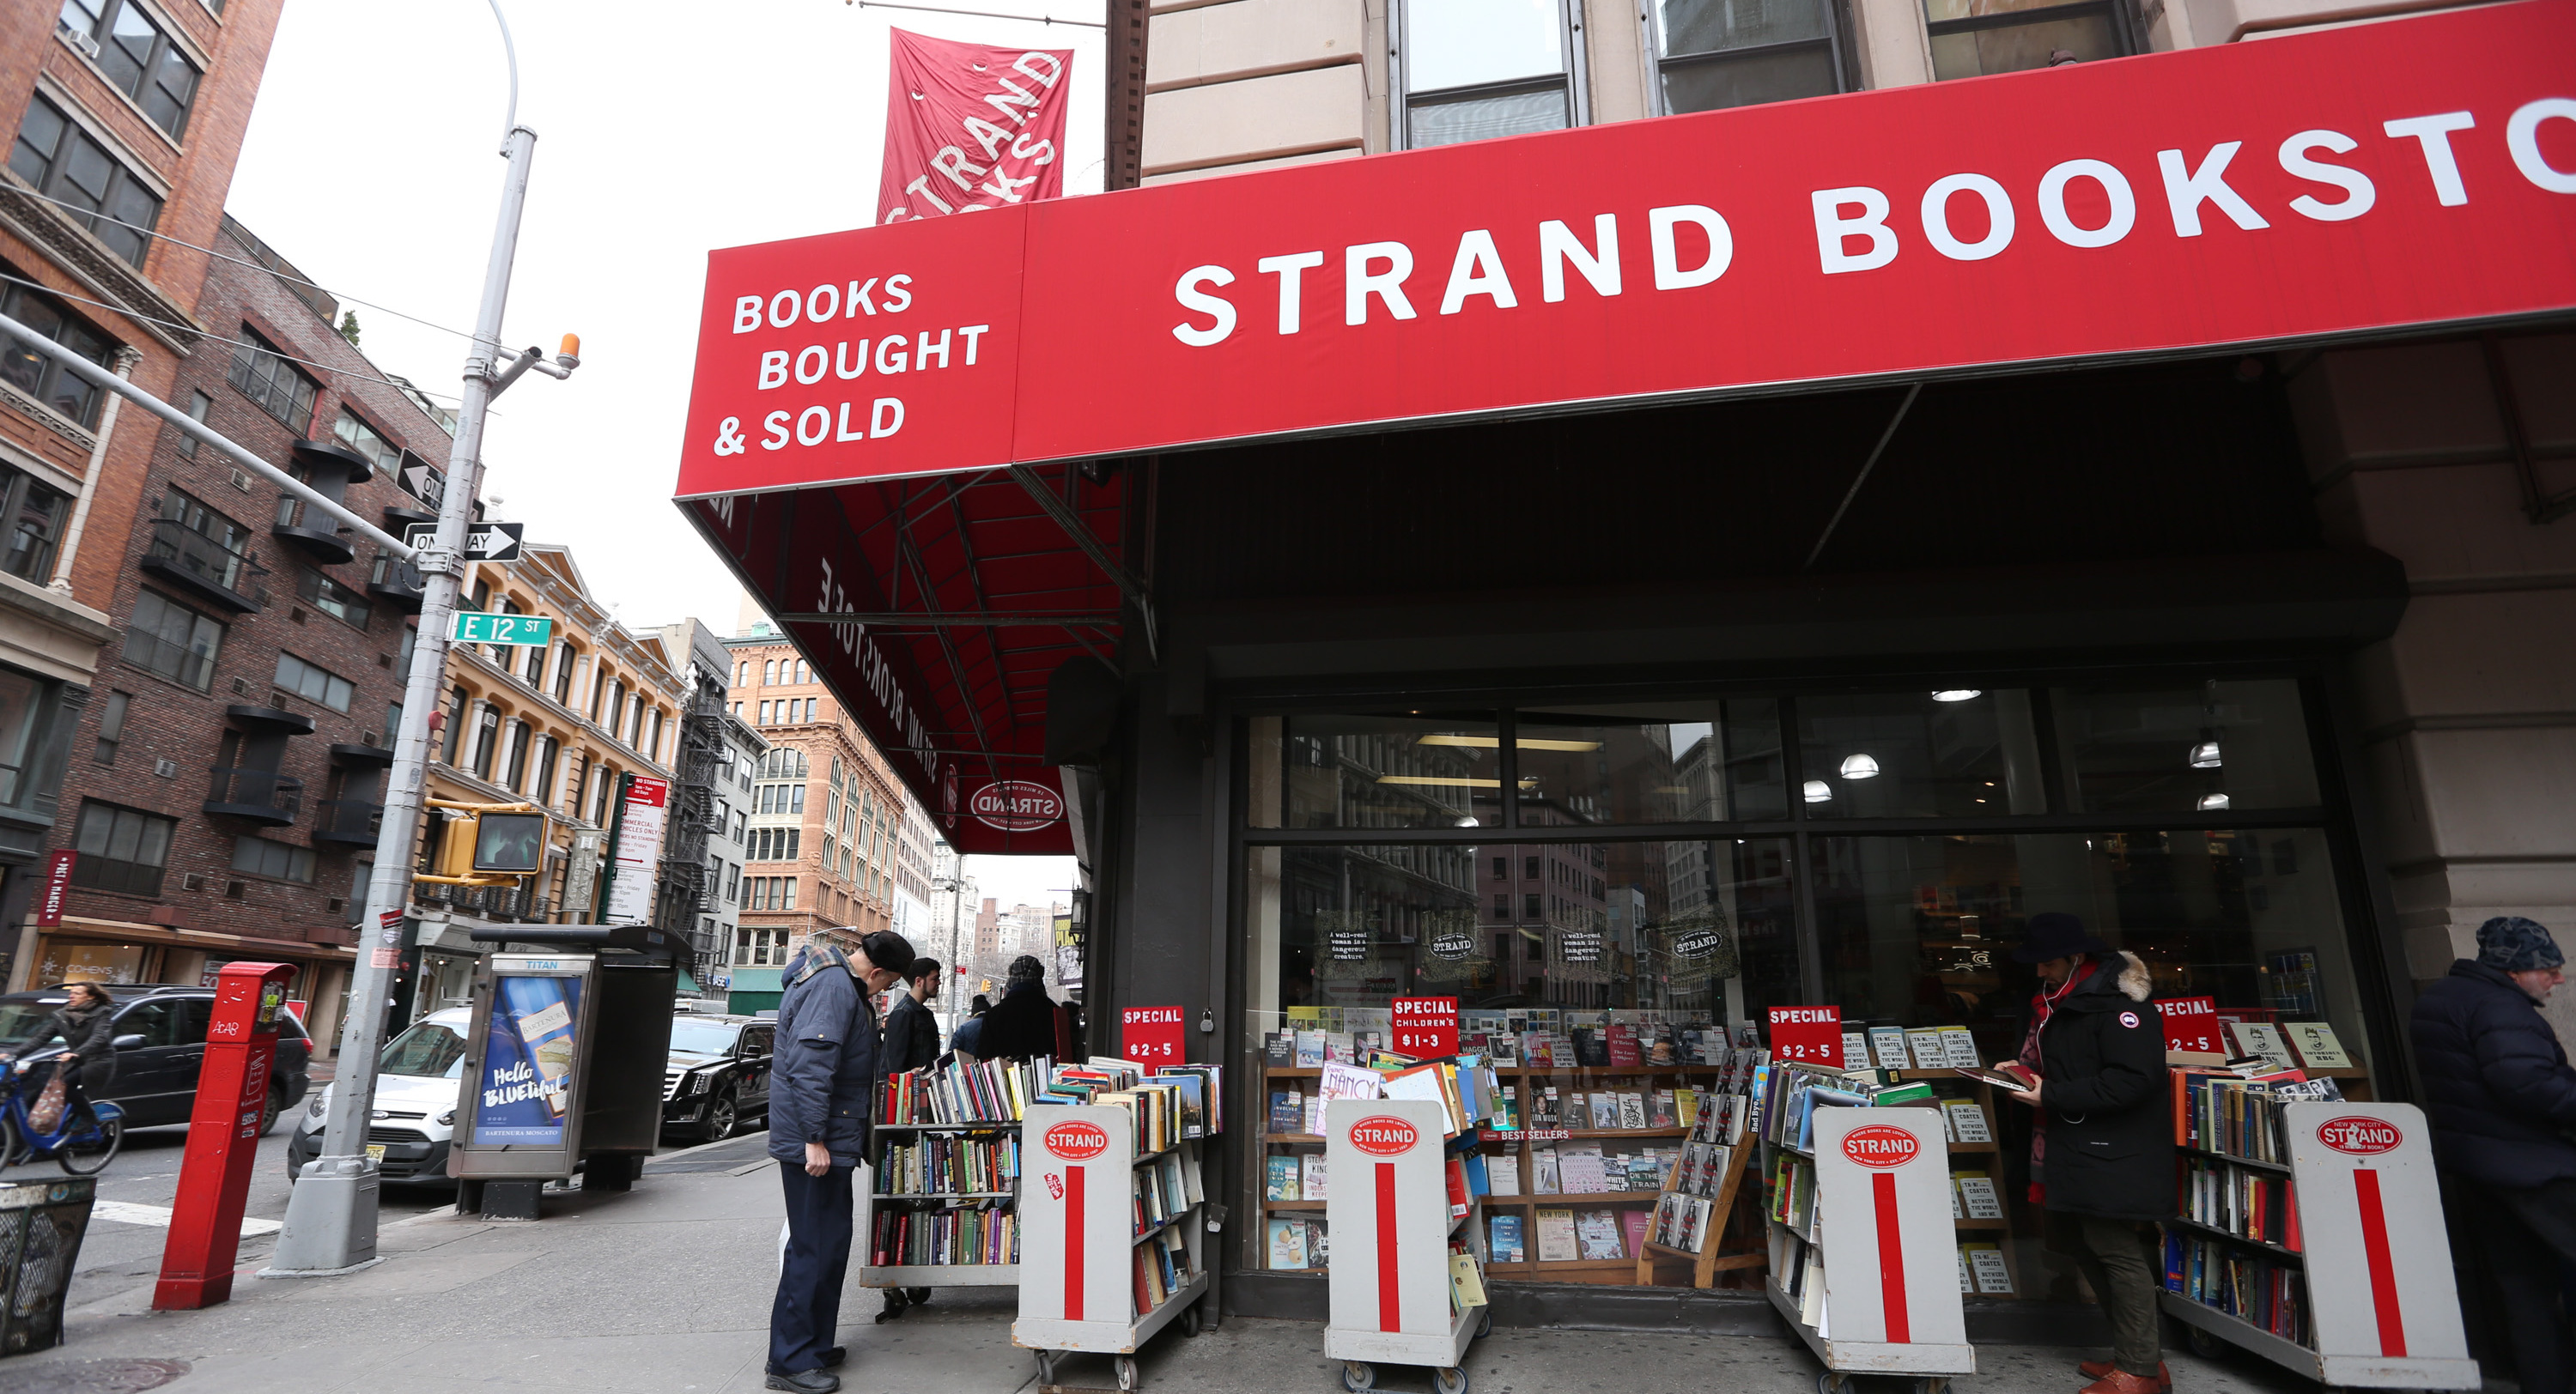 Laid-off NYC Booksellers Open Online Bookstore